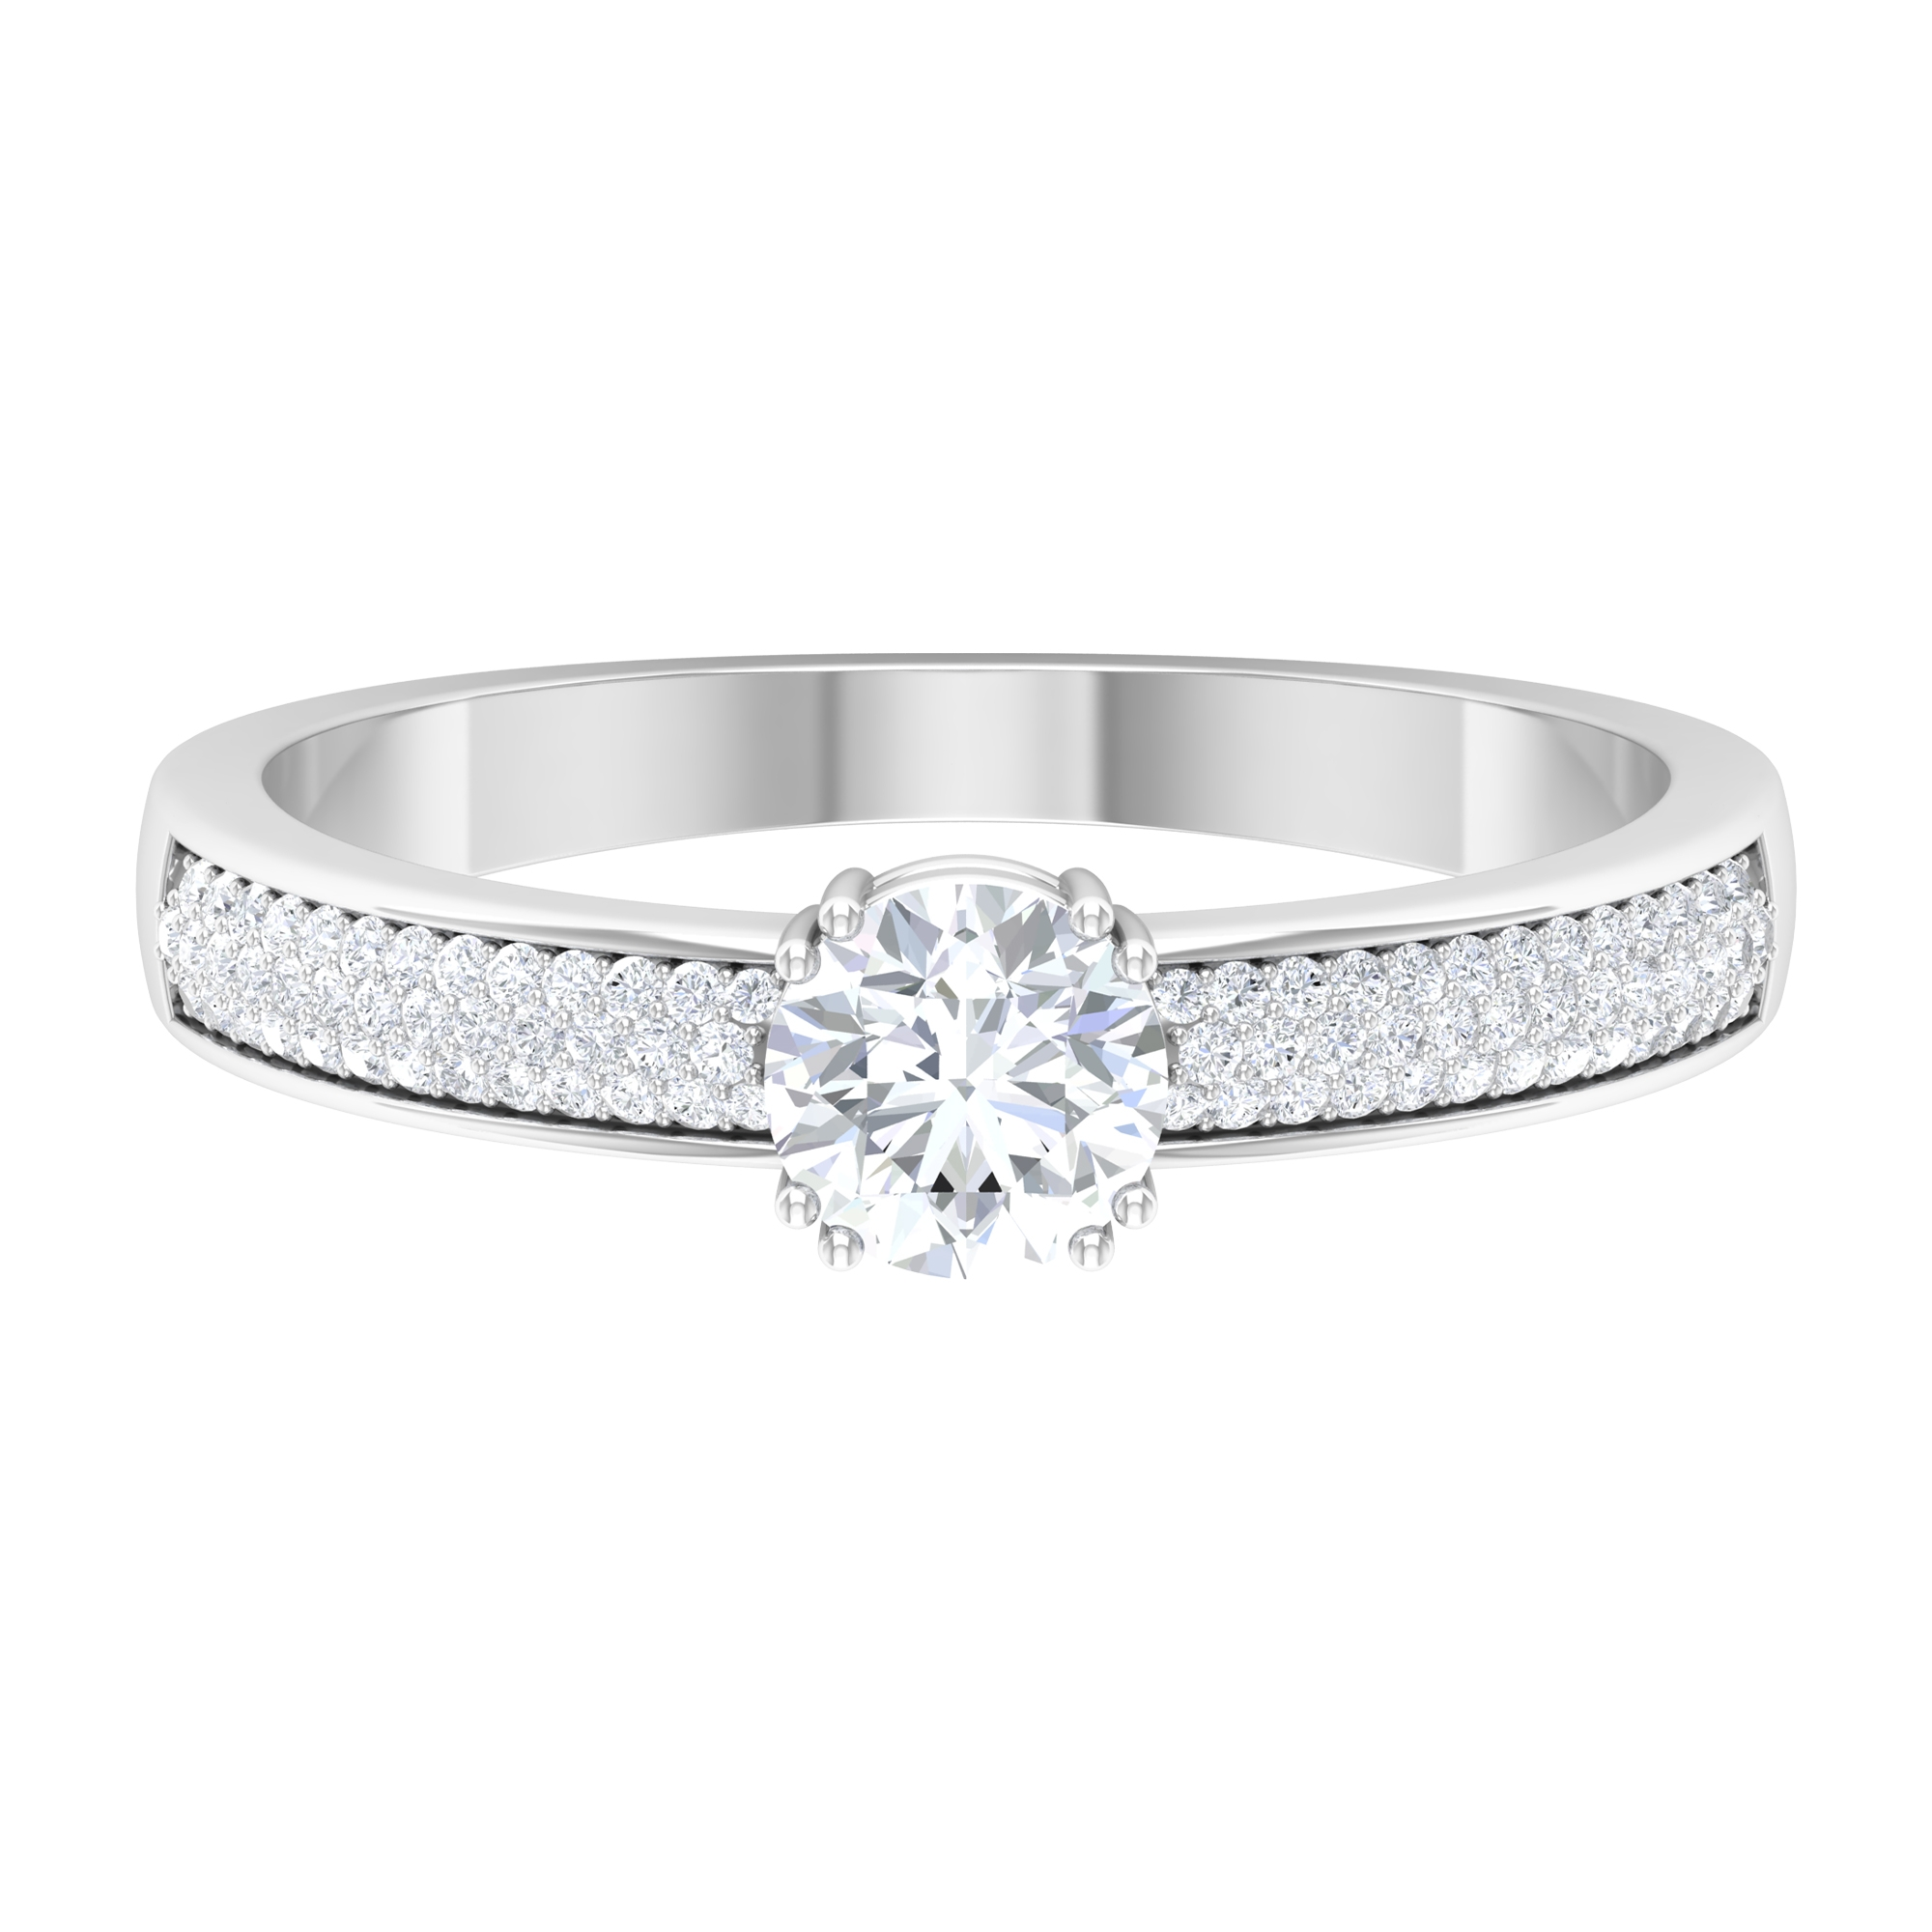 3/4 CT Double Prong Set Diamond Solitaire Ring with Pave Set Side Stones